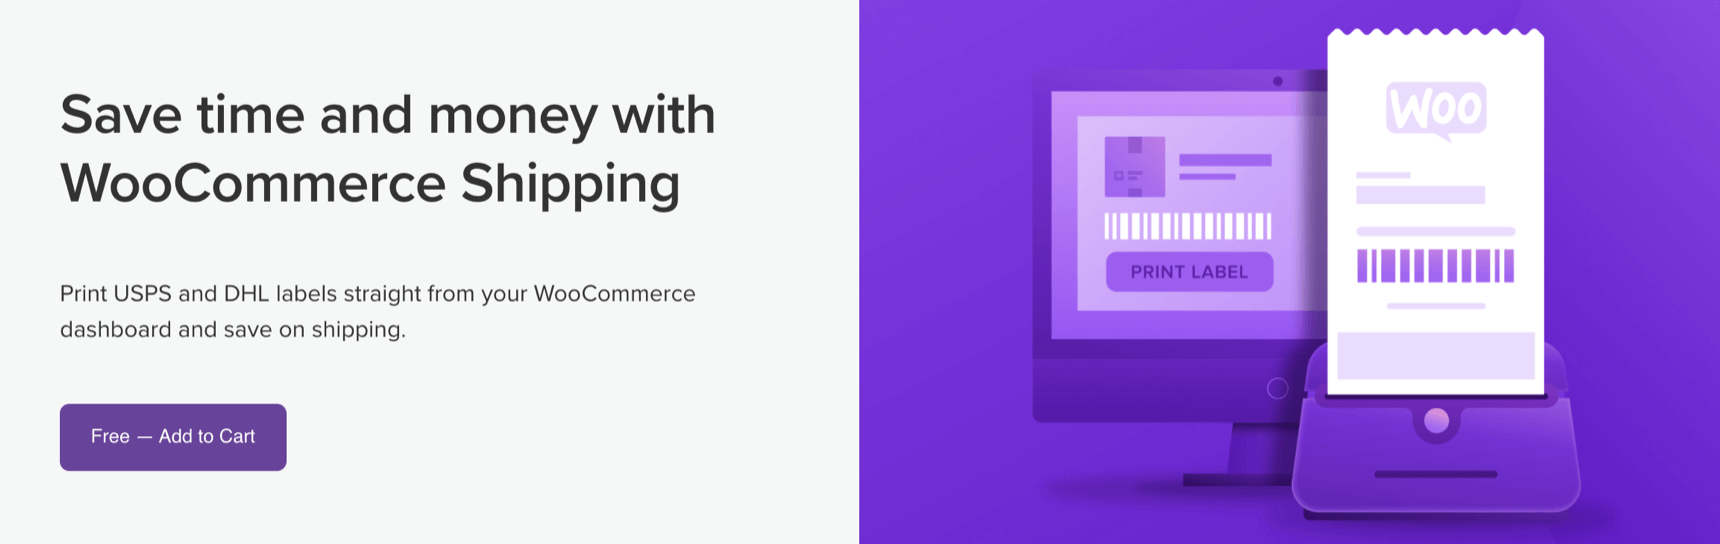 WooCommerce Shipping - Print USPS and DHL labels straight from your WooCommerce dashboard